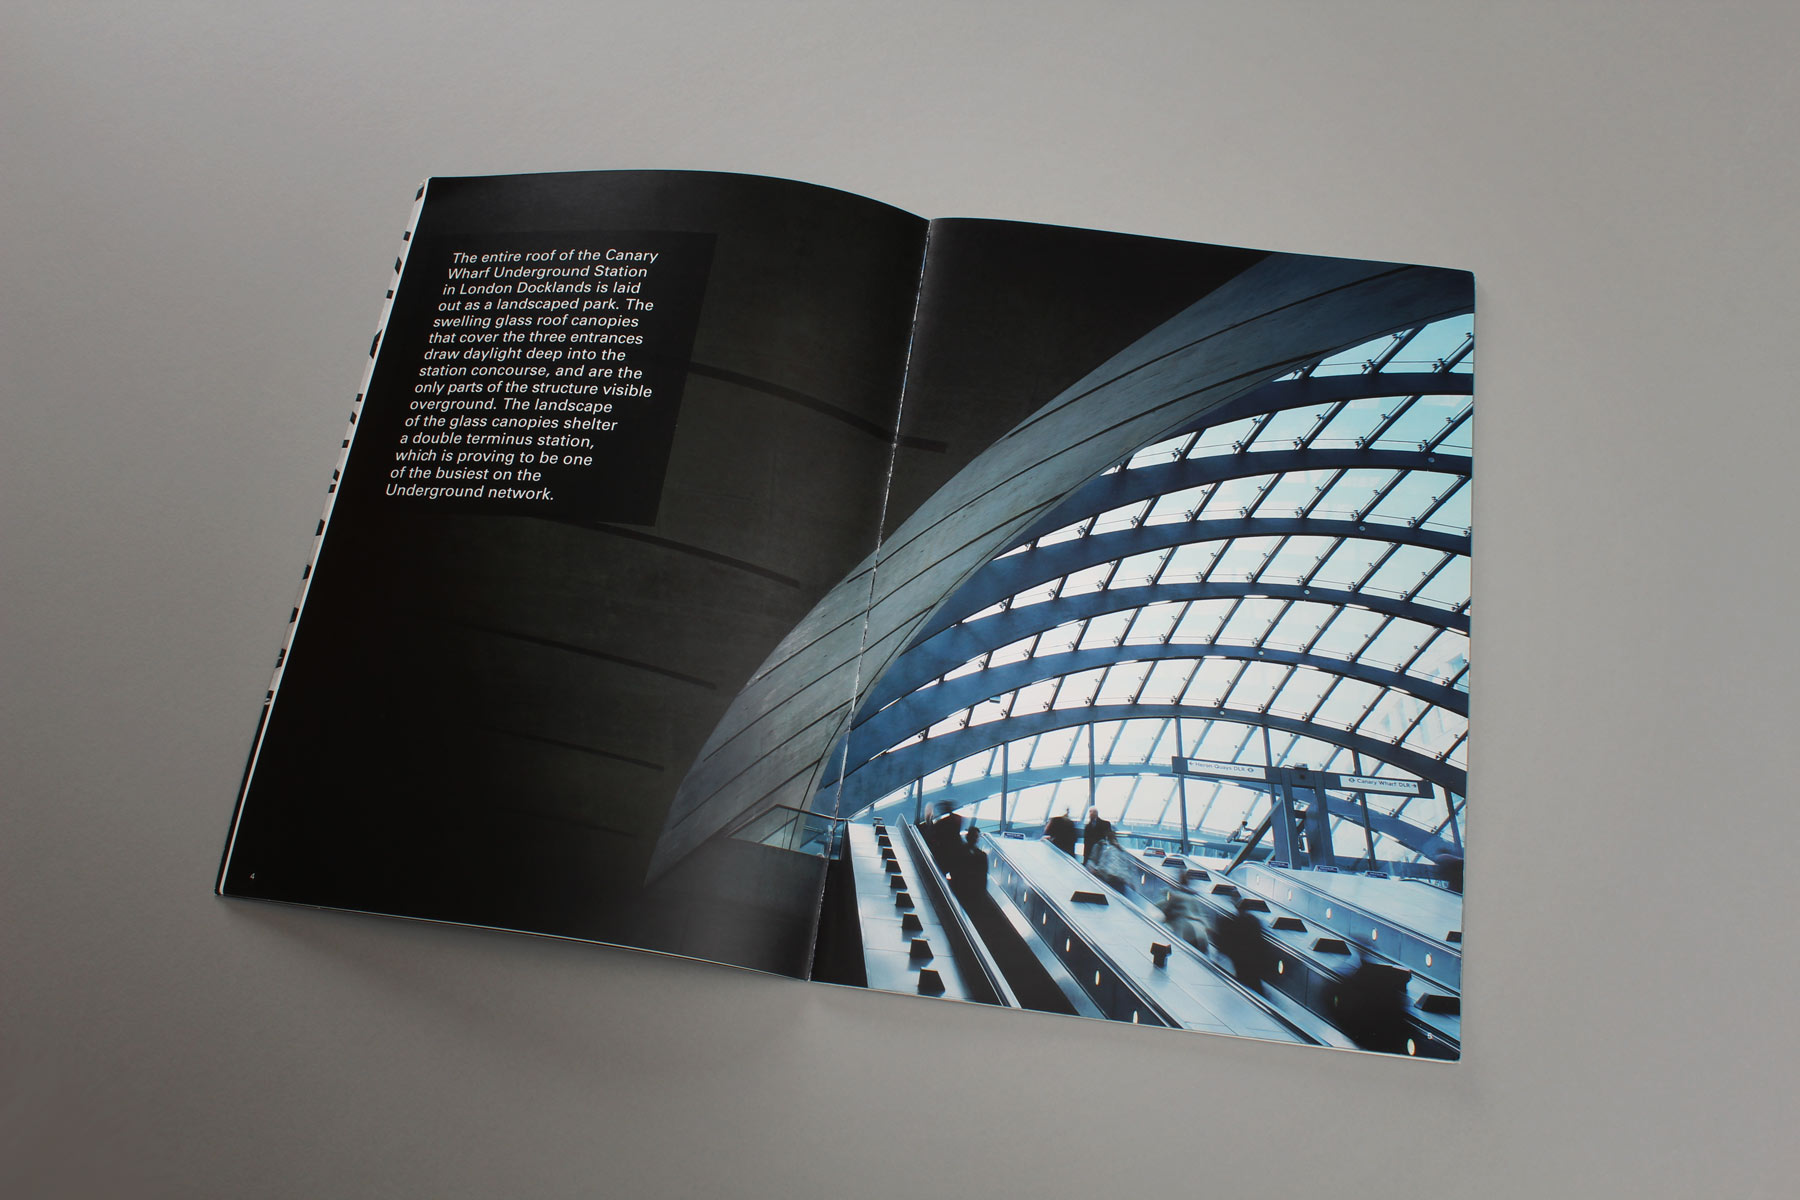 The use of bold imagery and key statements enables the publication to raise interest amongst its readers.